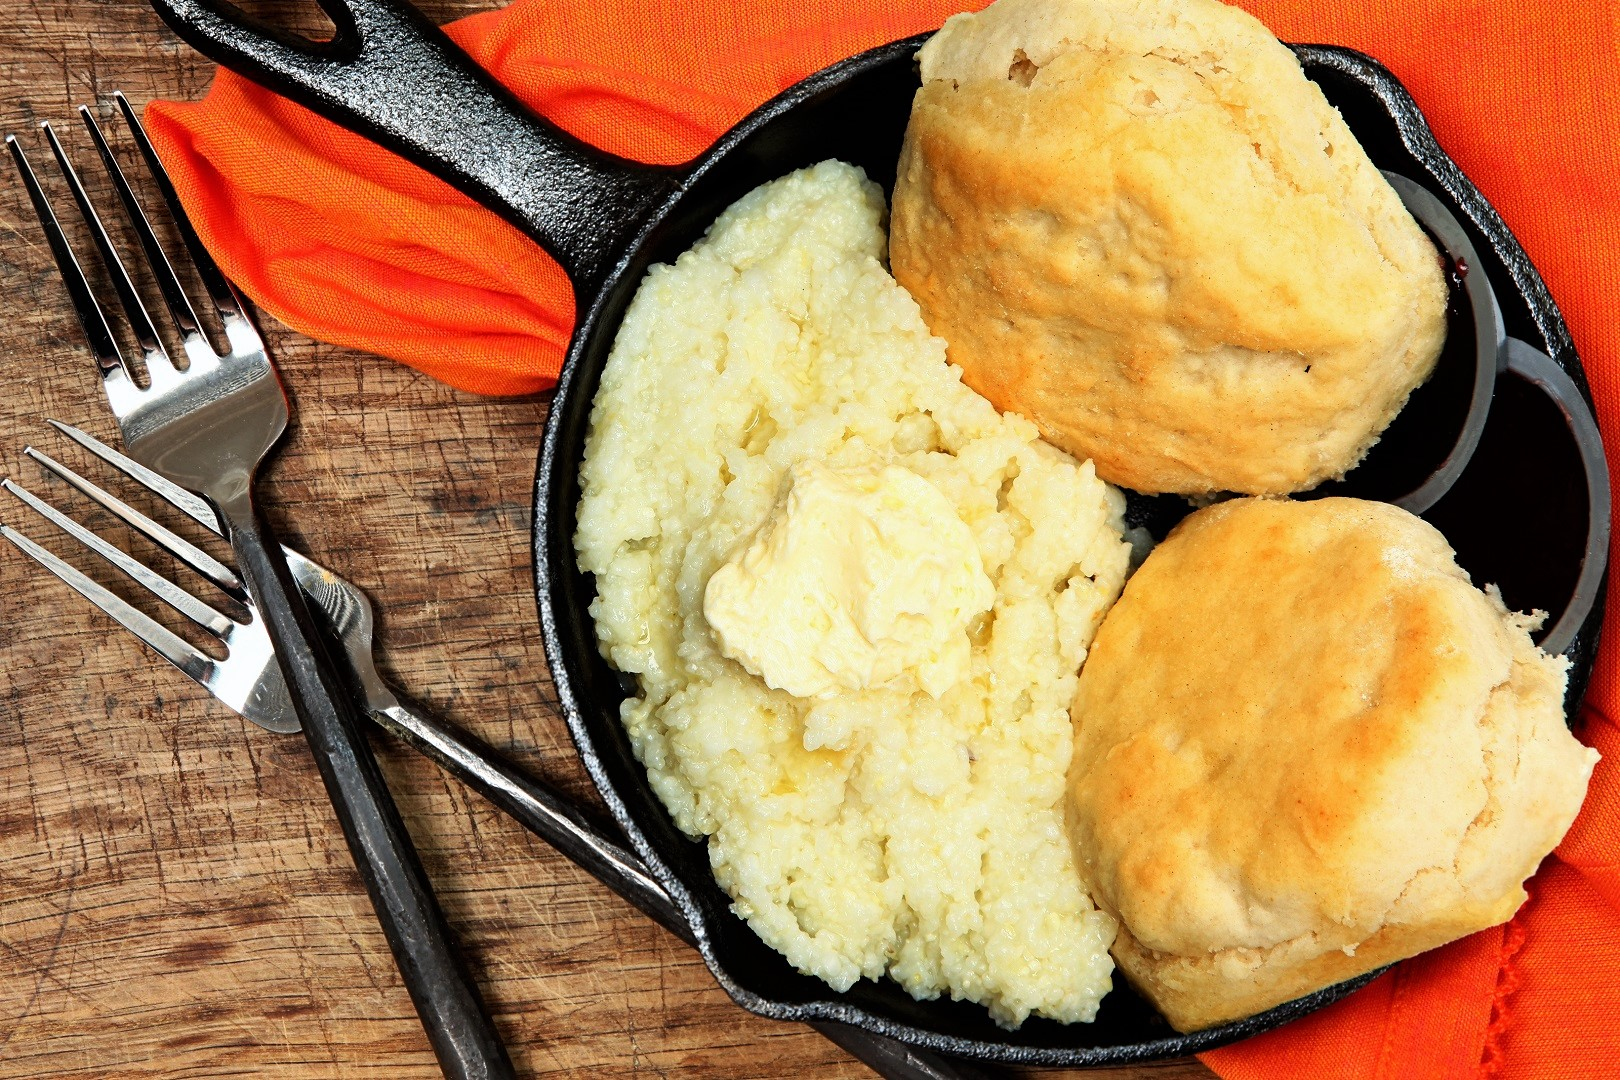 Grits and Biscuits on Iron Skillet with Metal Fork